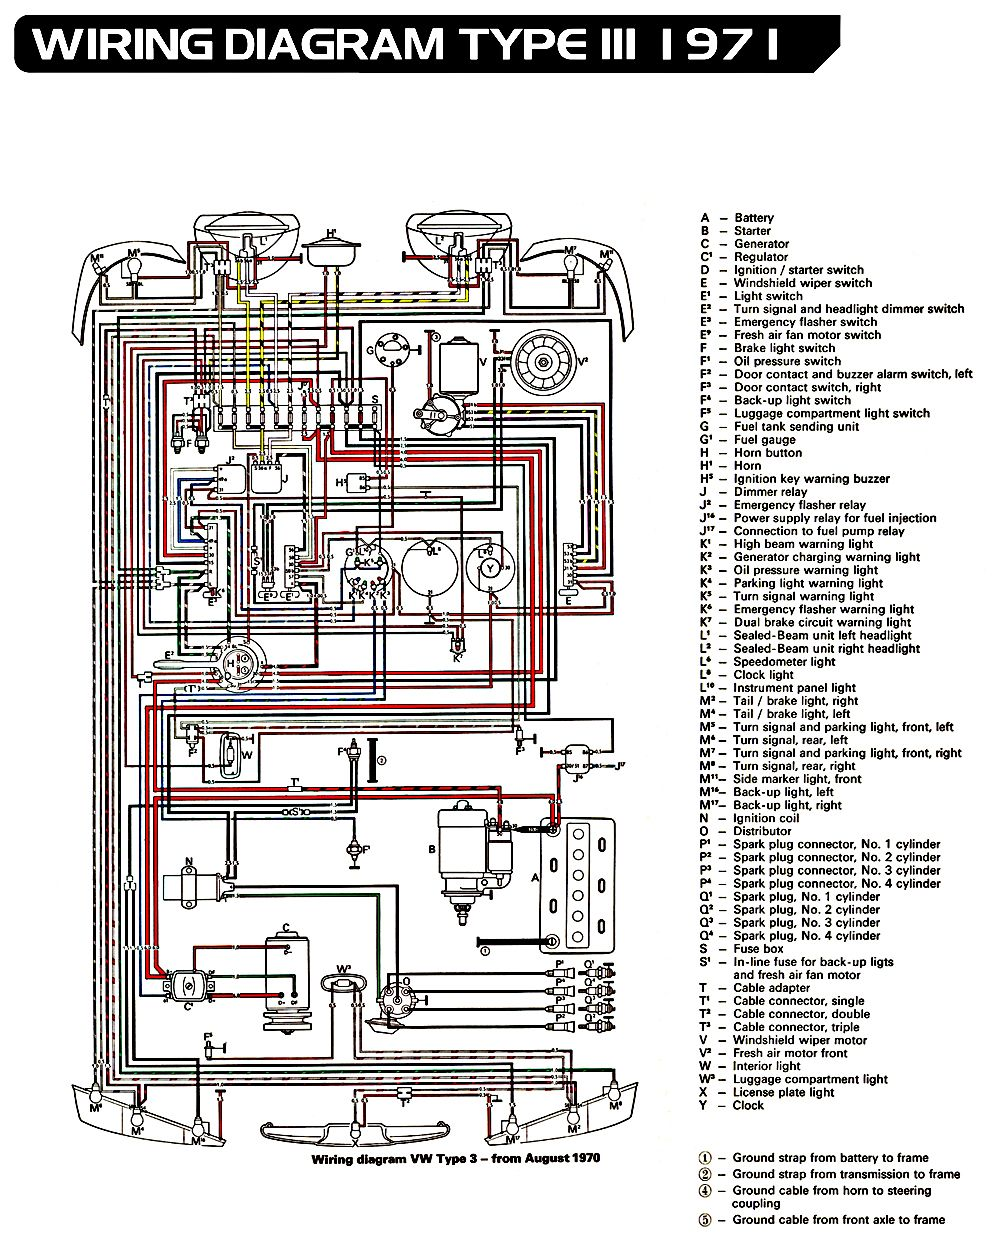 e19fd202920e69647b5c593f54755423 vw mk1 wiring diagram 1971 vw beetle wiring diagram \u2022 wiring International Tractor Wiring Diagram at soozxer.org